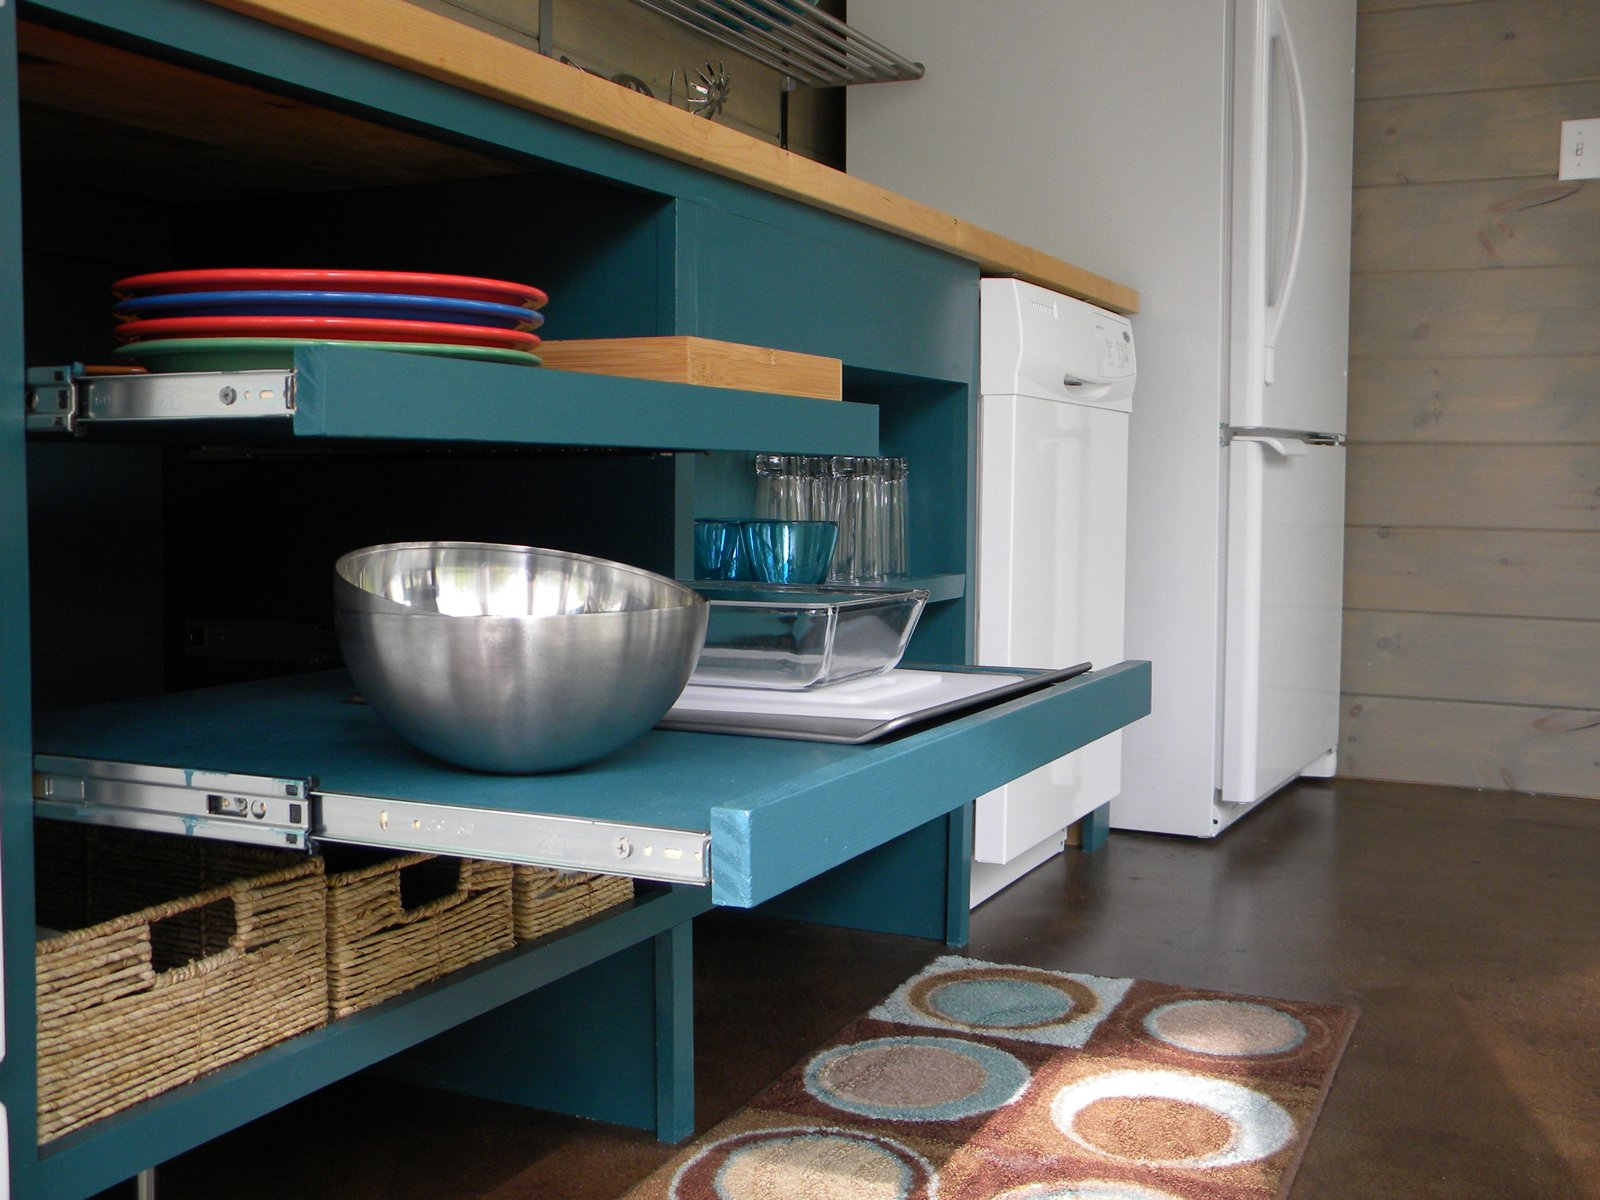 Kitchen, Colorful Cabinet, and Wood Counter The open, pull-out shelves allow for easy reaching and the gap at the bottom of the drawers makes room for the feet of someone in a wheelchair so they can be closer to the counter.  Best Photos from Butterfly Gap Retreat